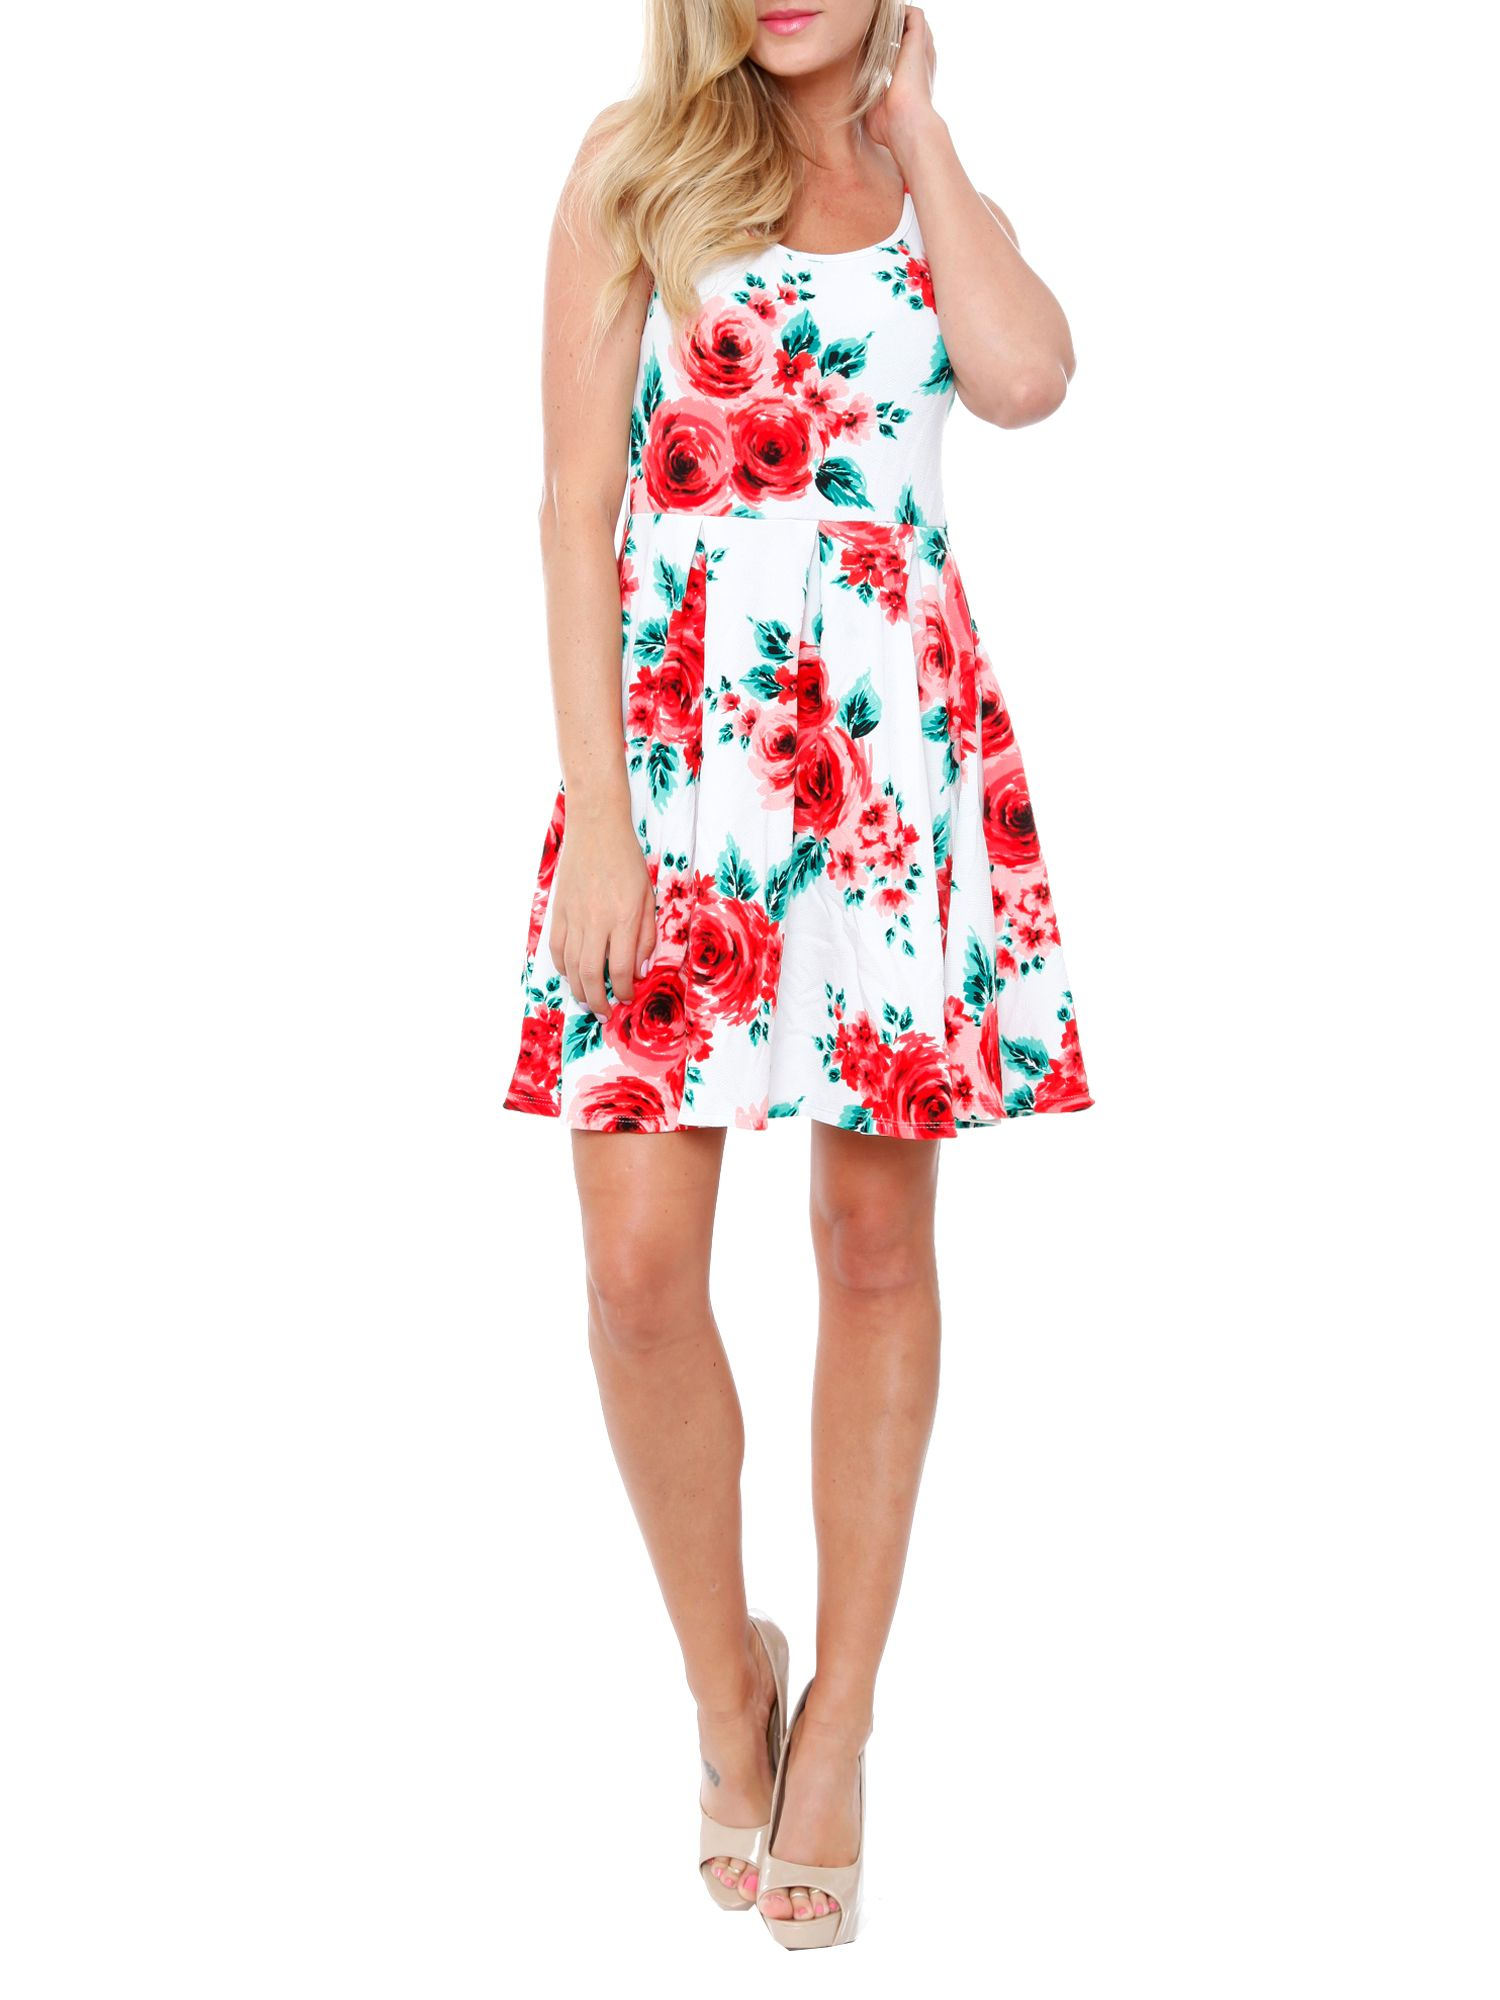 White Mark Women S Floral Fit And Flare Mini Dress Walmart Com Flare Mini Dress Mini Dress Fit And Flare Dress [ 2000 x 1500 Pixel ]